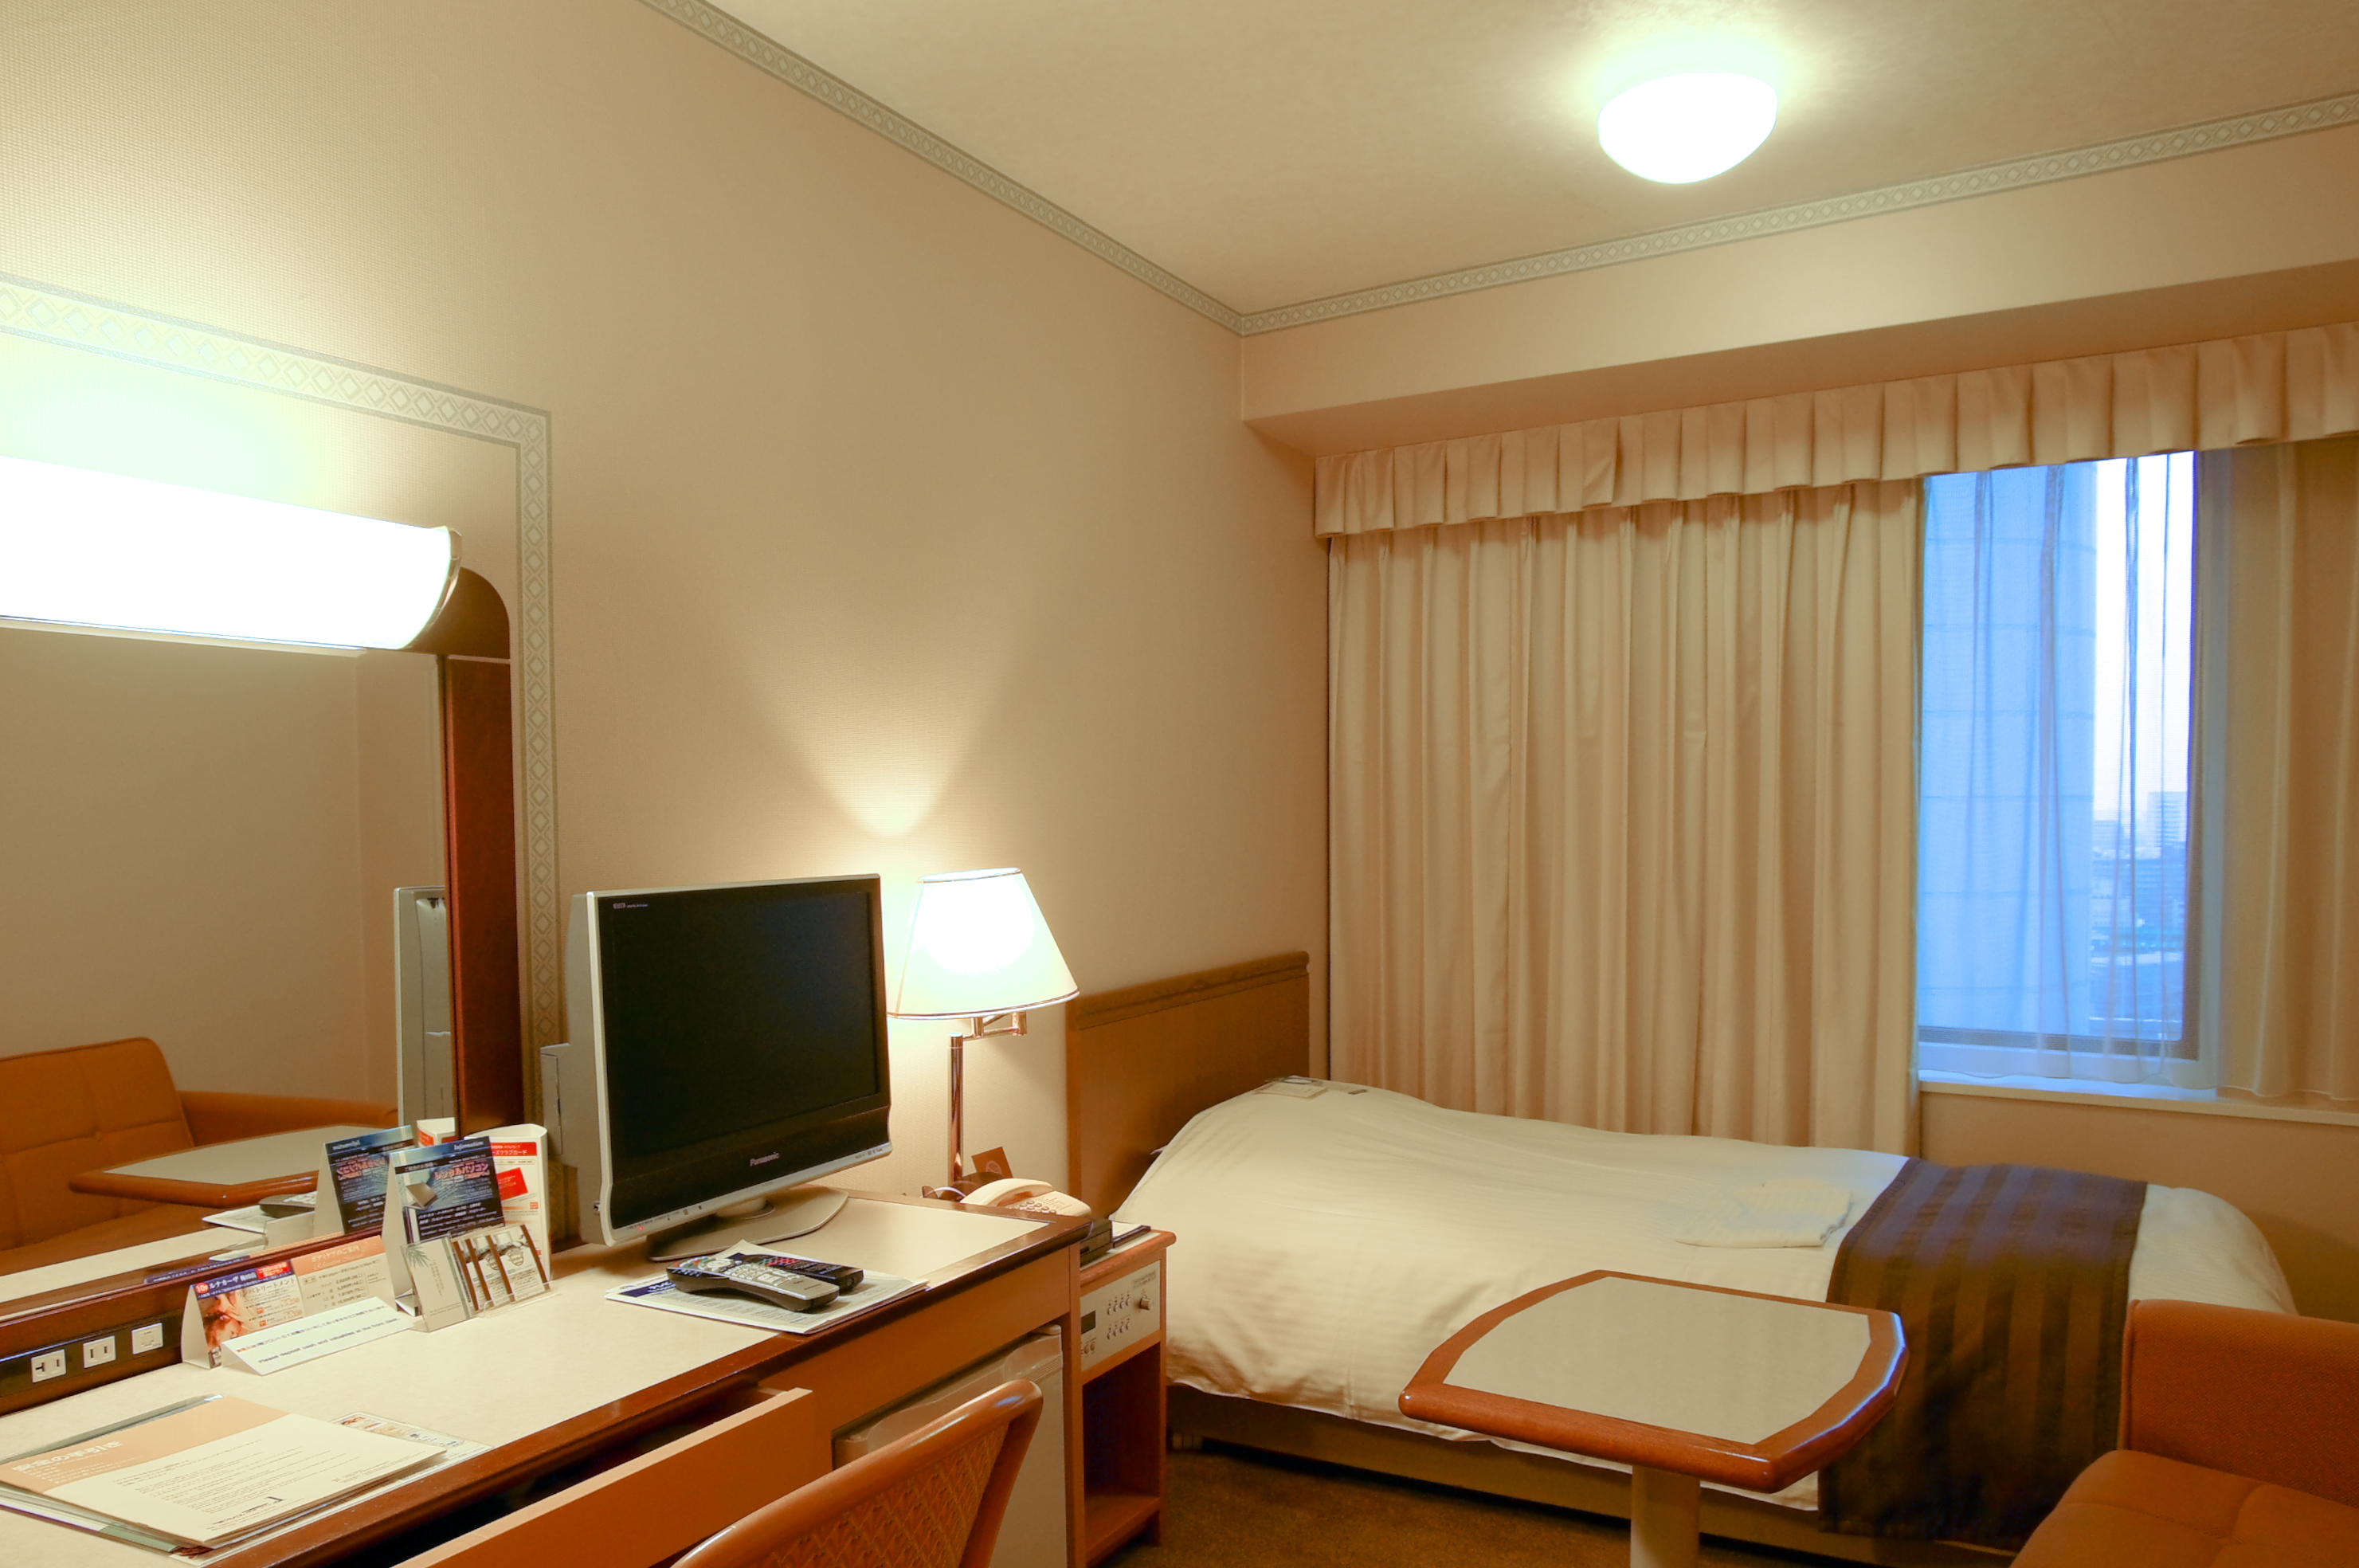 file osaka dai ichi hotel moderate single room 20100211